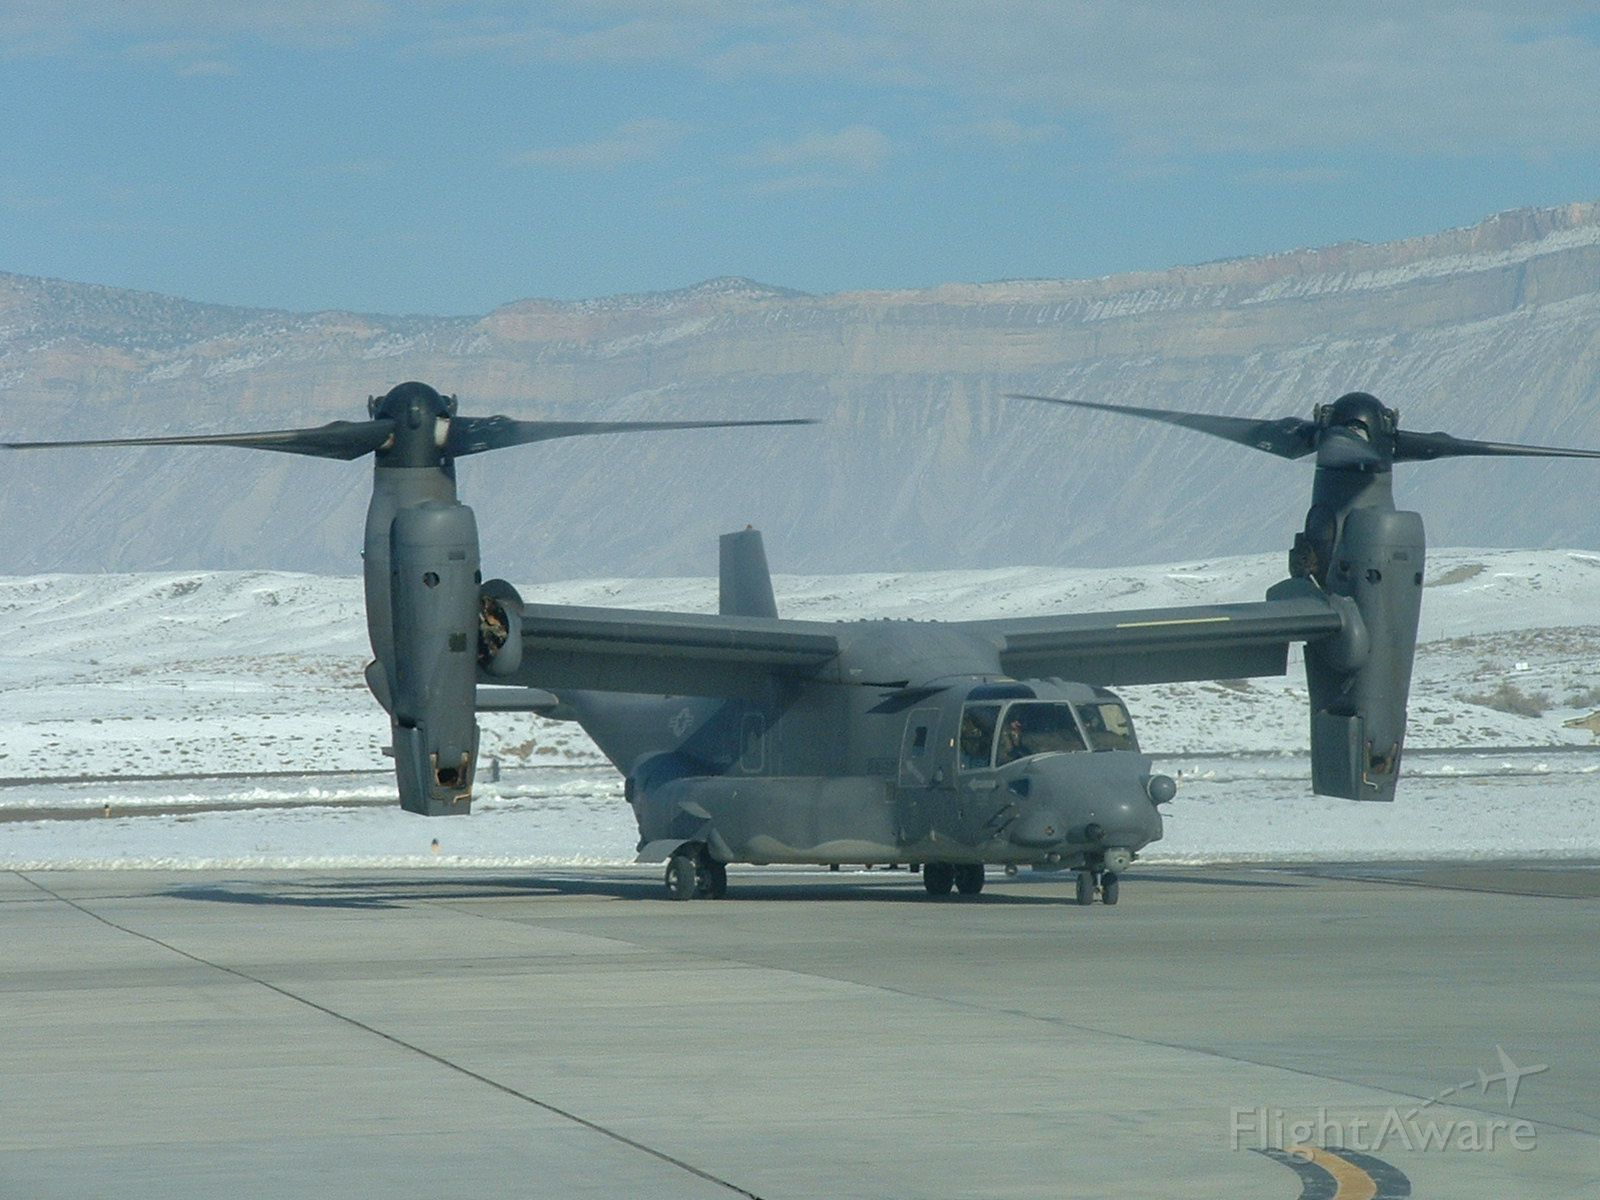 Bell V-22 Osprey (07-0034) - 19 DEC 2013 - A US Air Force CV-22B visiting from Kirtland AFB on a very cold day.